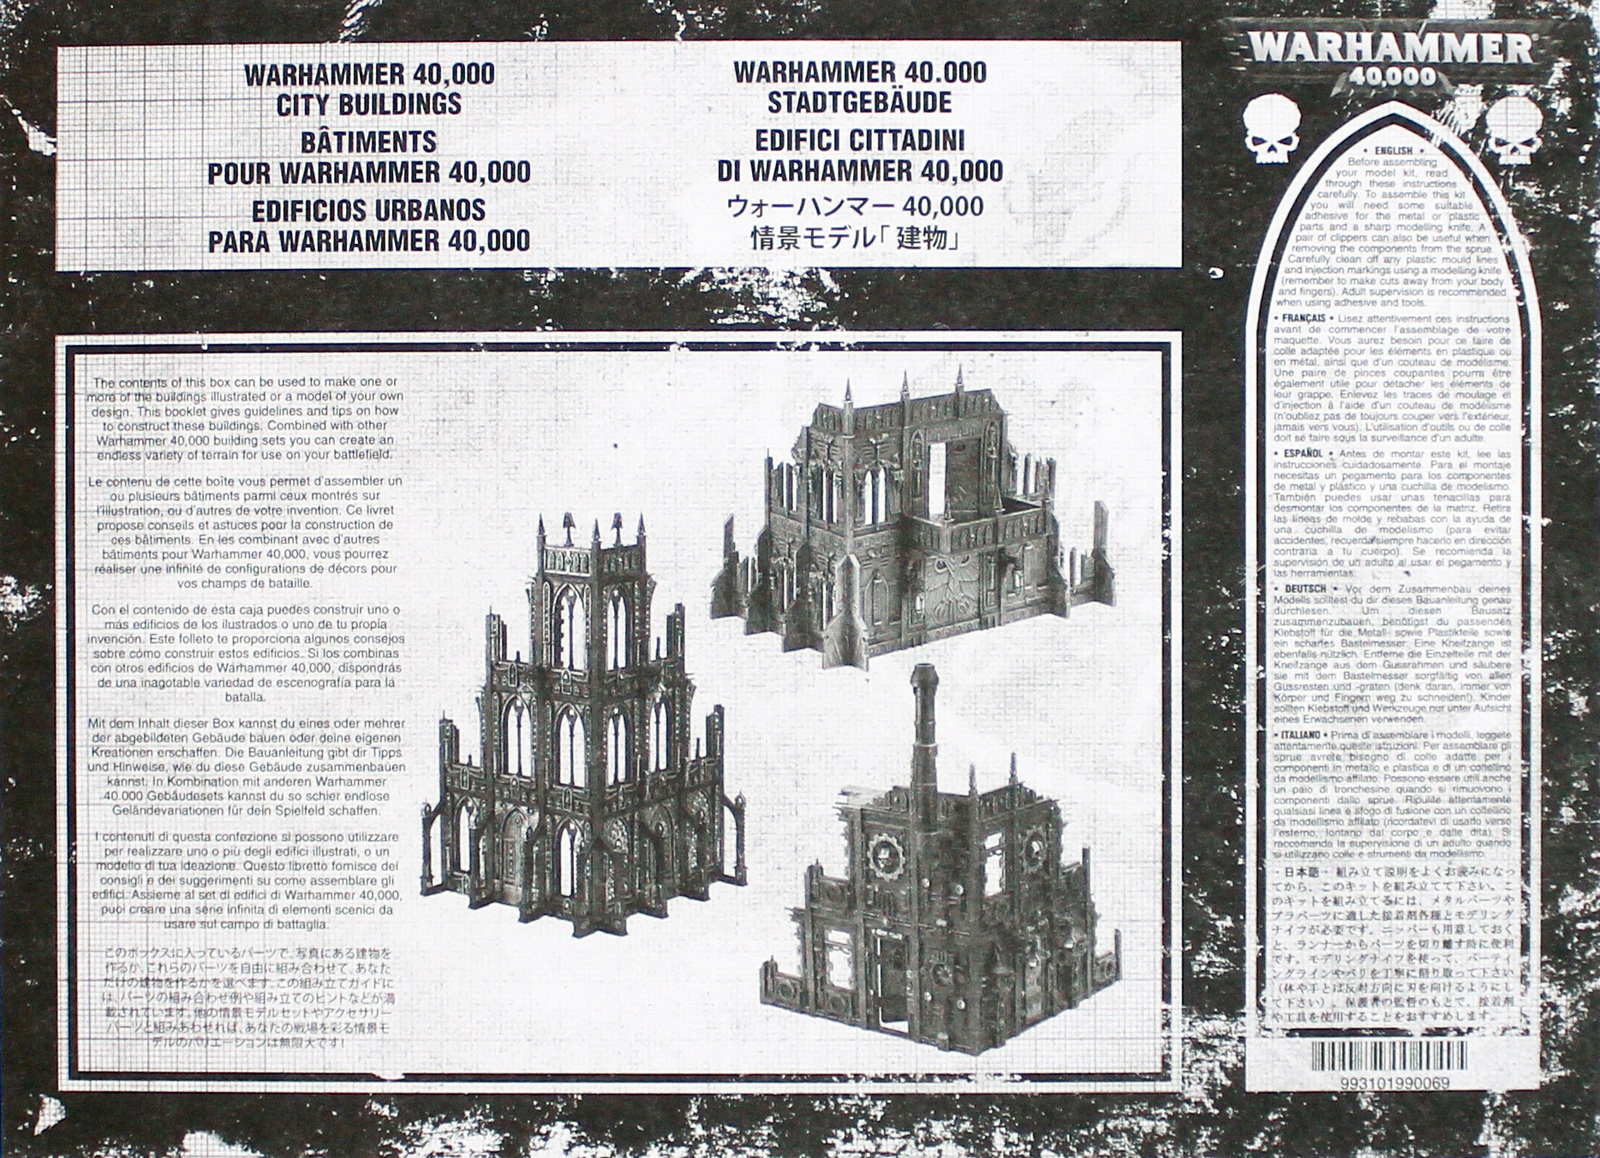 Warhammer 40,000 Imperial Sector Model Kit image